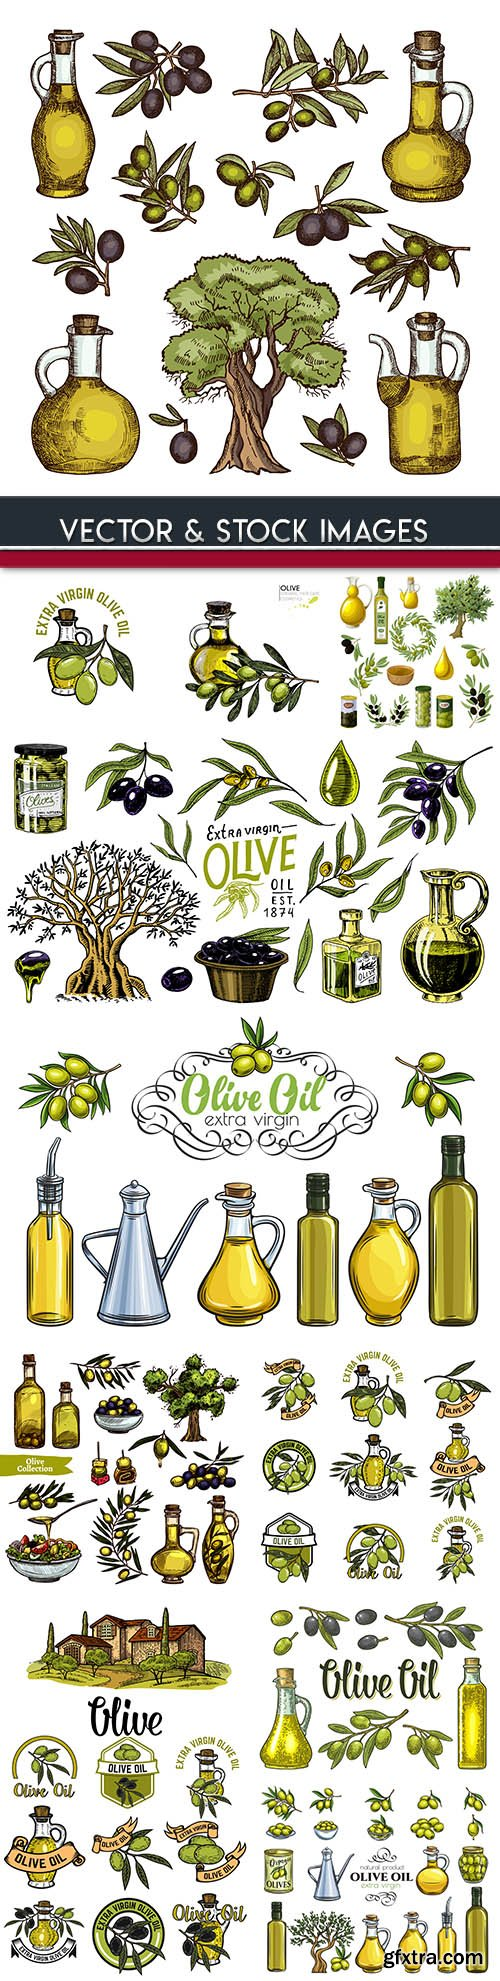 Olive oil and branch and olive sketch illustrations